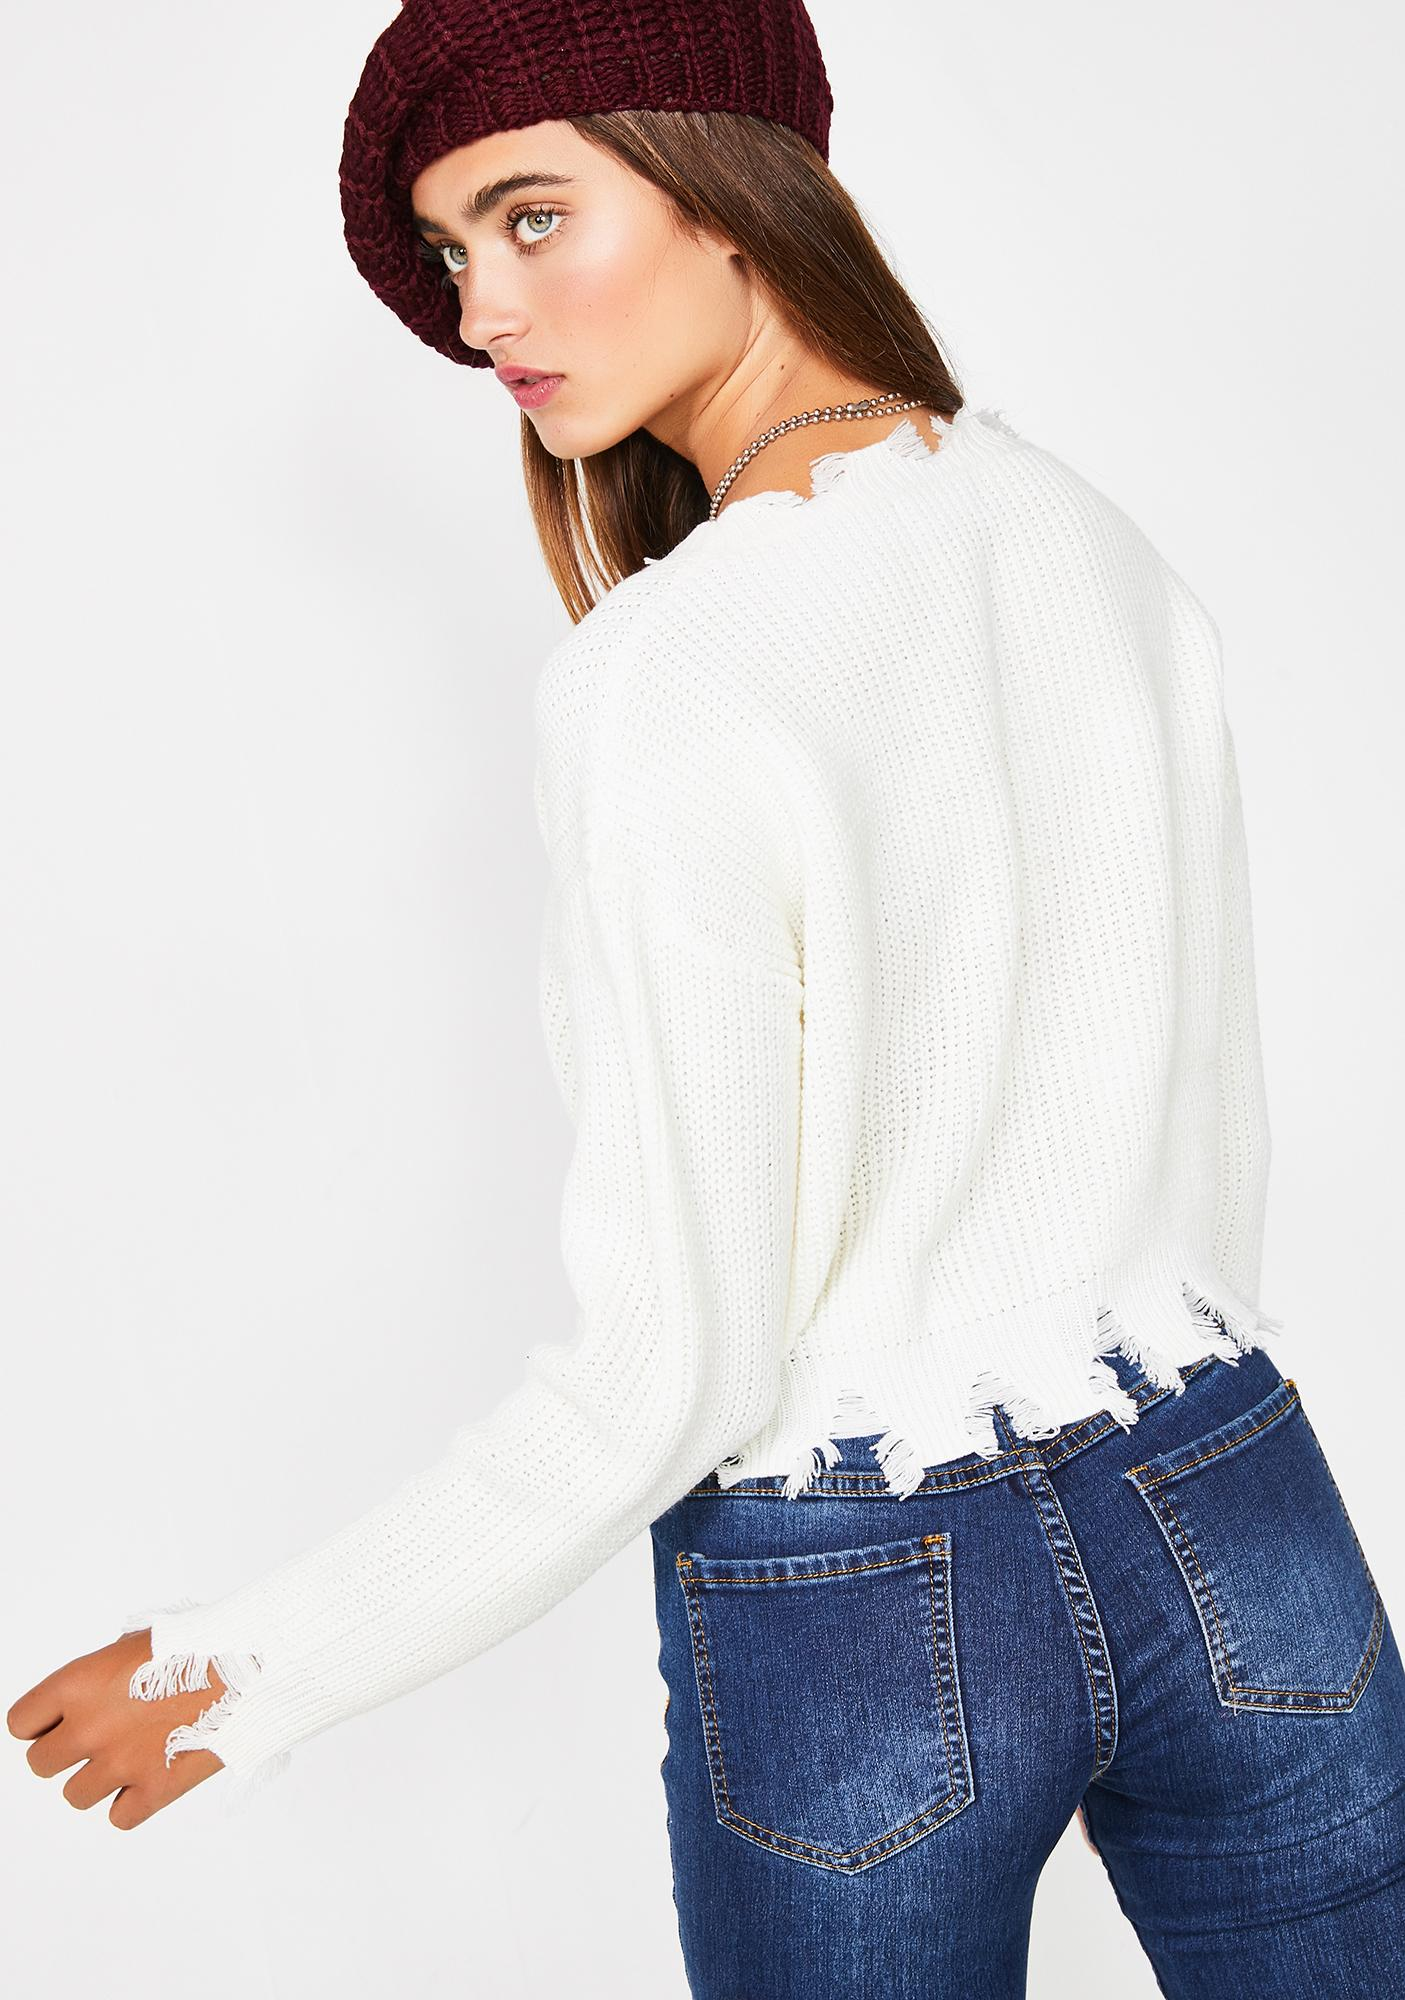 Icy No Priorities Cropped Sweater